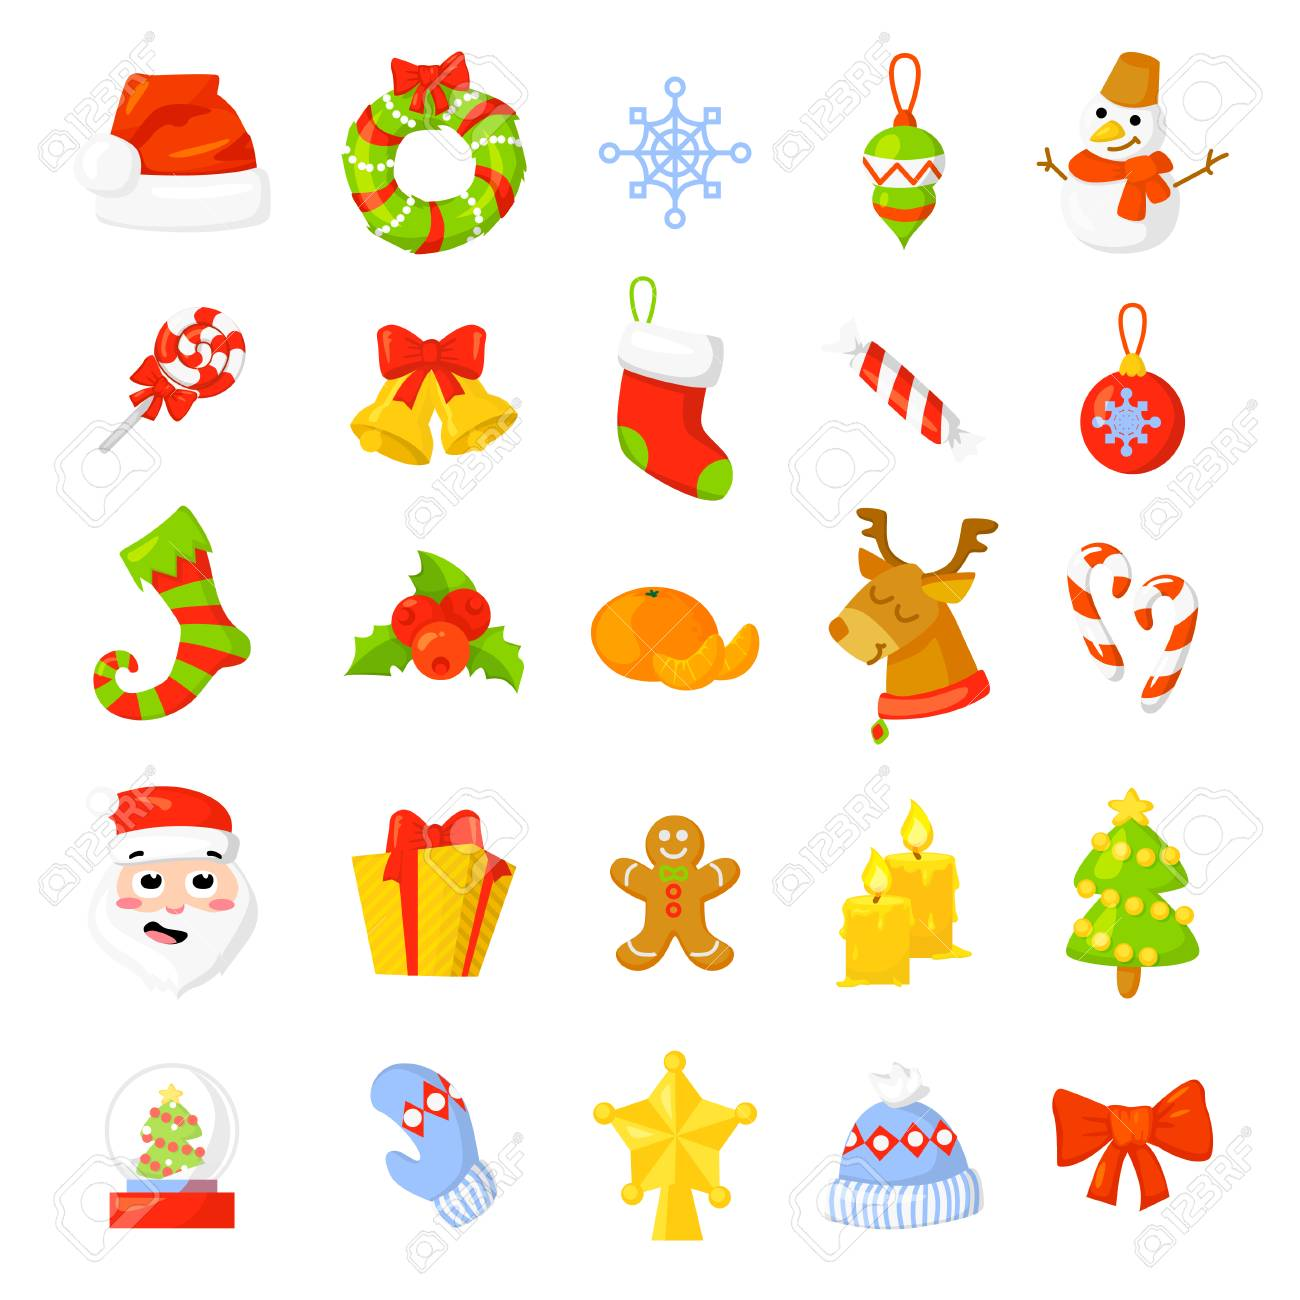 vector clip art christmas icon set collection vector cartoon new year traditional symbols icons objects